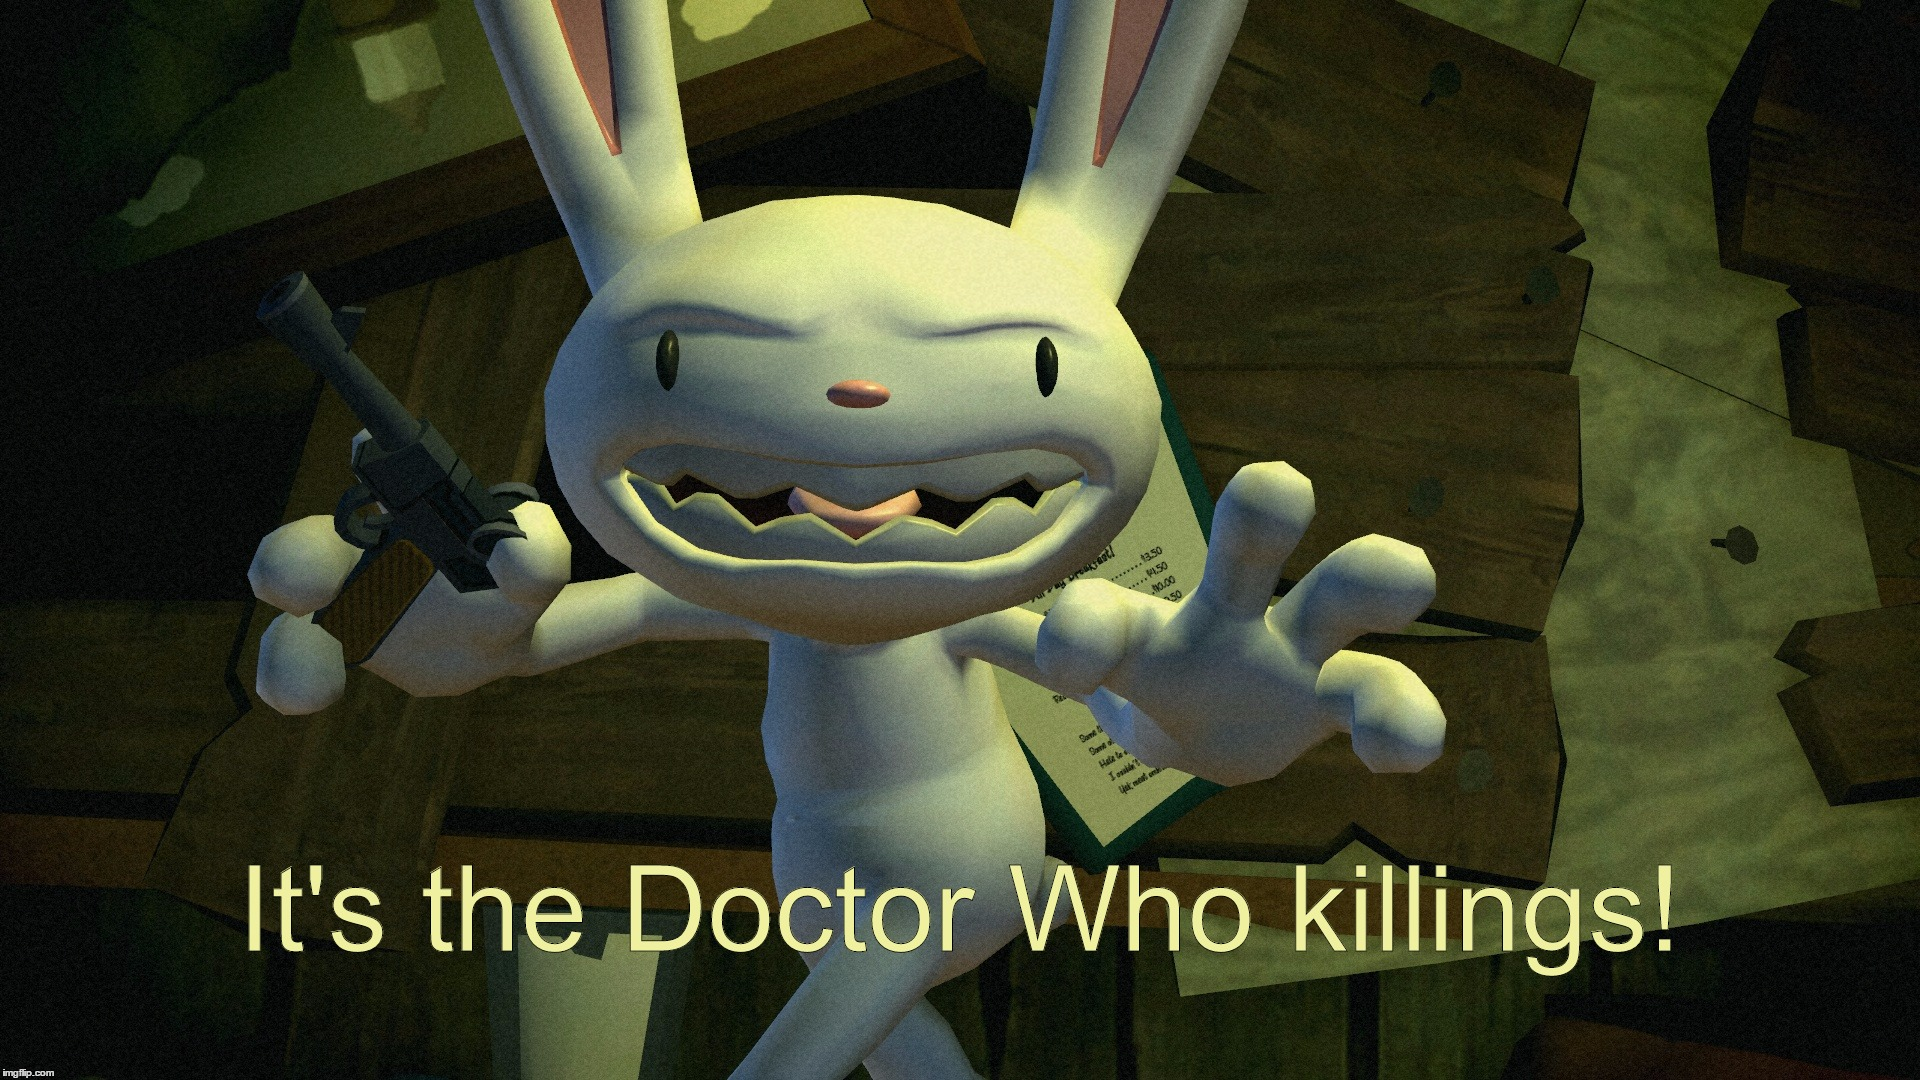 It's the Doctor Who killings! | It's the Doctor Who killings! | image tagged in sam,max,doctor,who,killings,healers | made w/ Imgflip meme maker